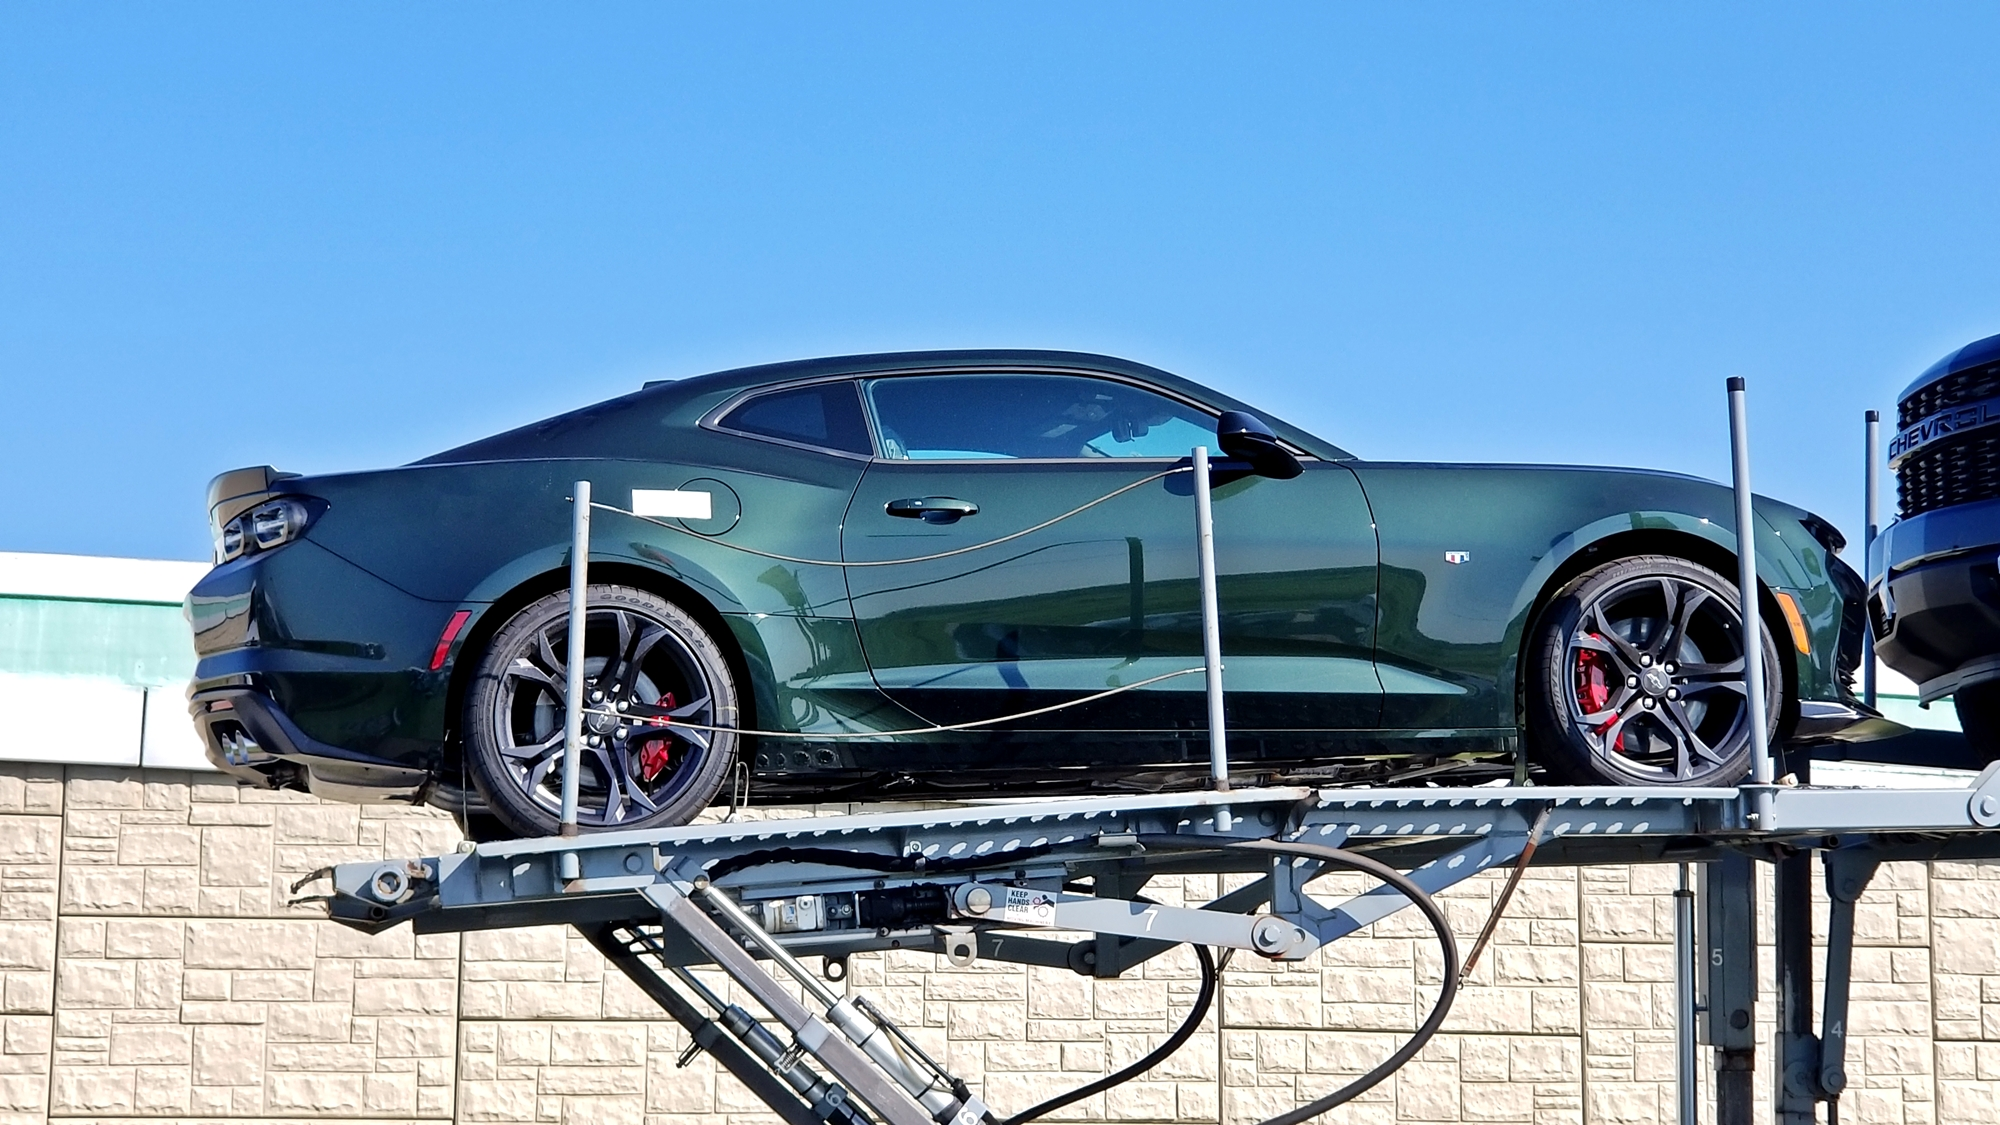 2020 Rally Green Camaro SS 1LE